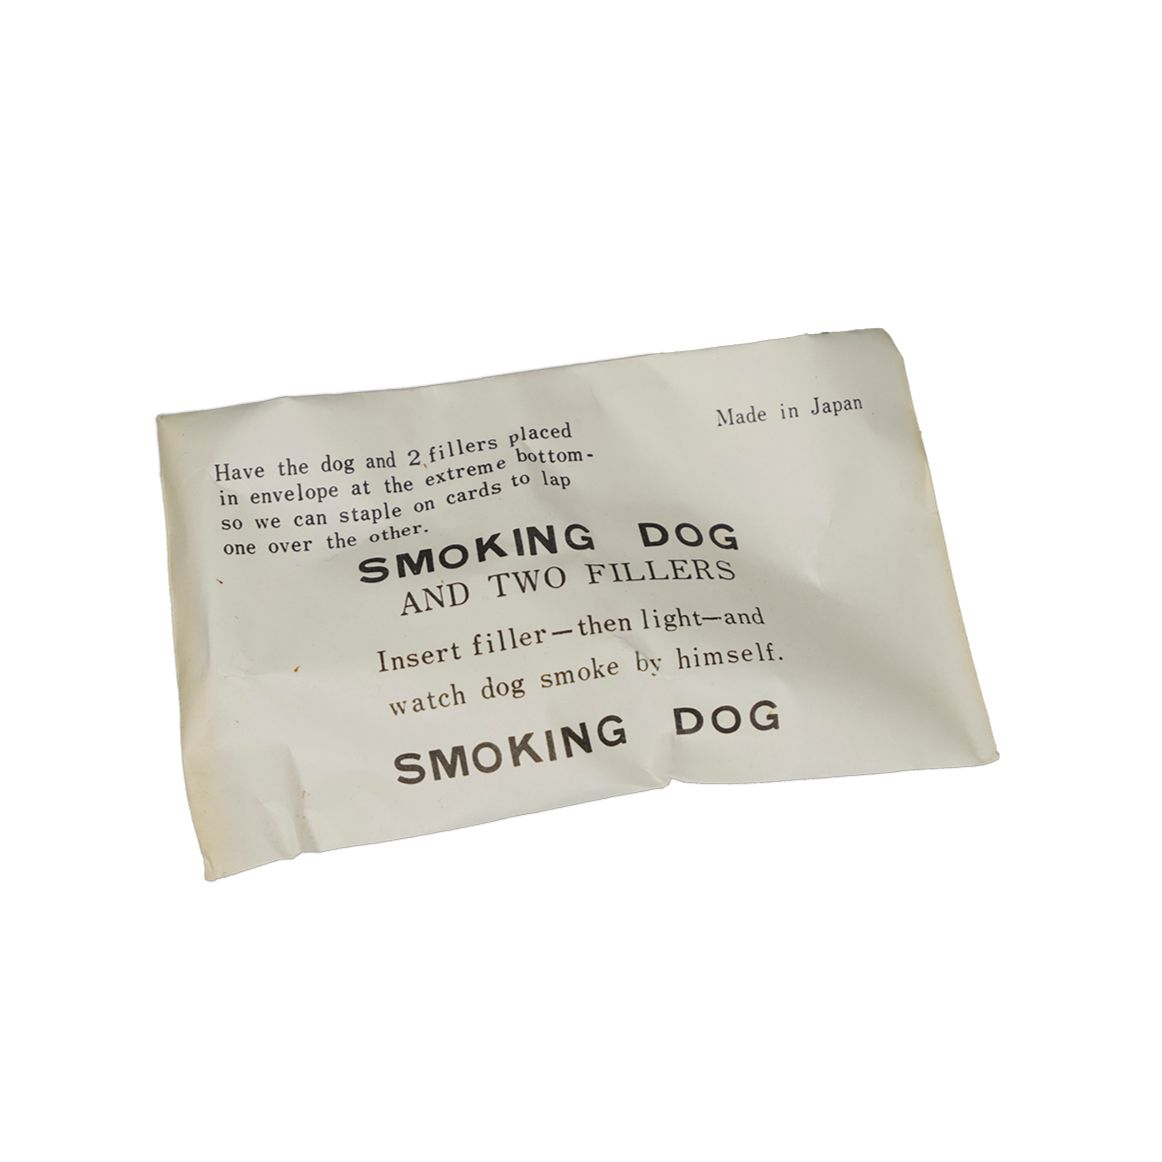 Smoking Dog And Two Filters from Japan, circa 1950s, N.O.S.